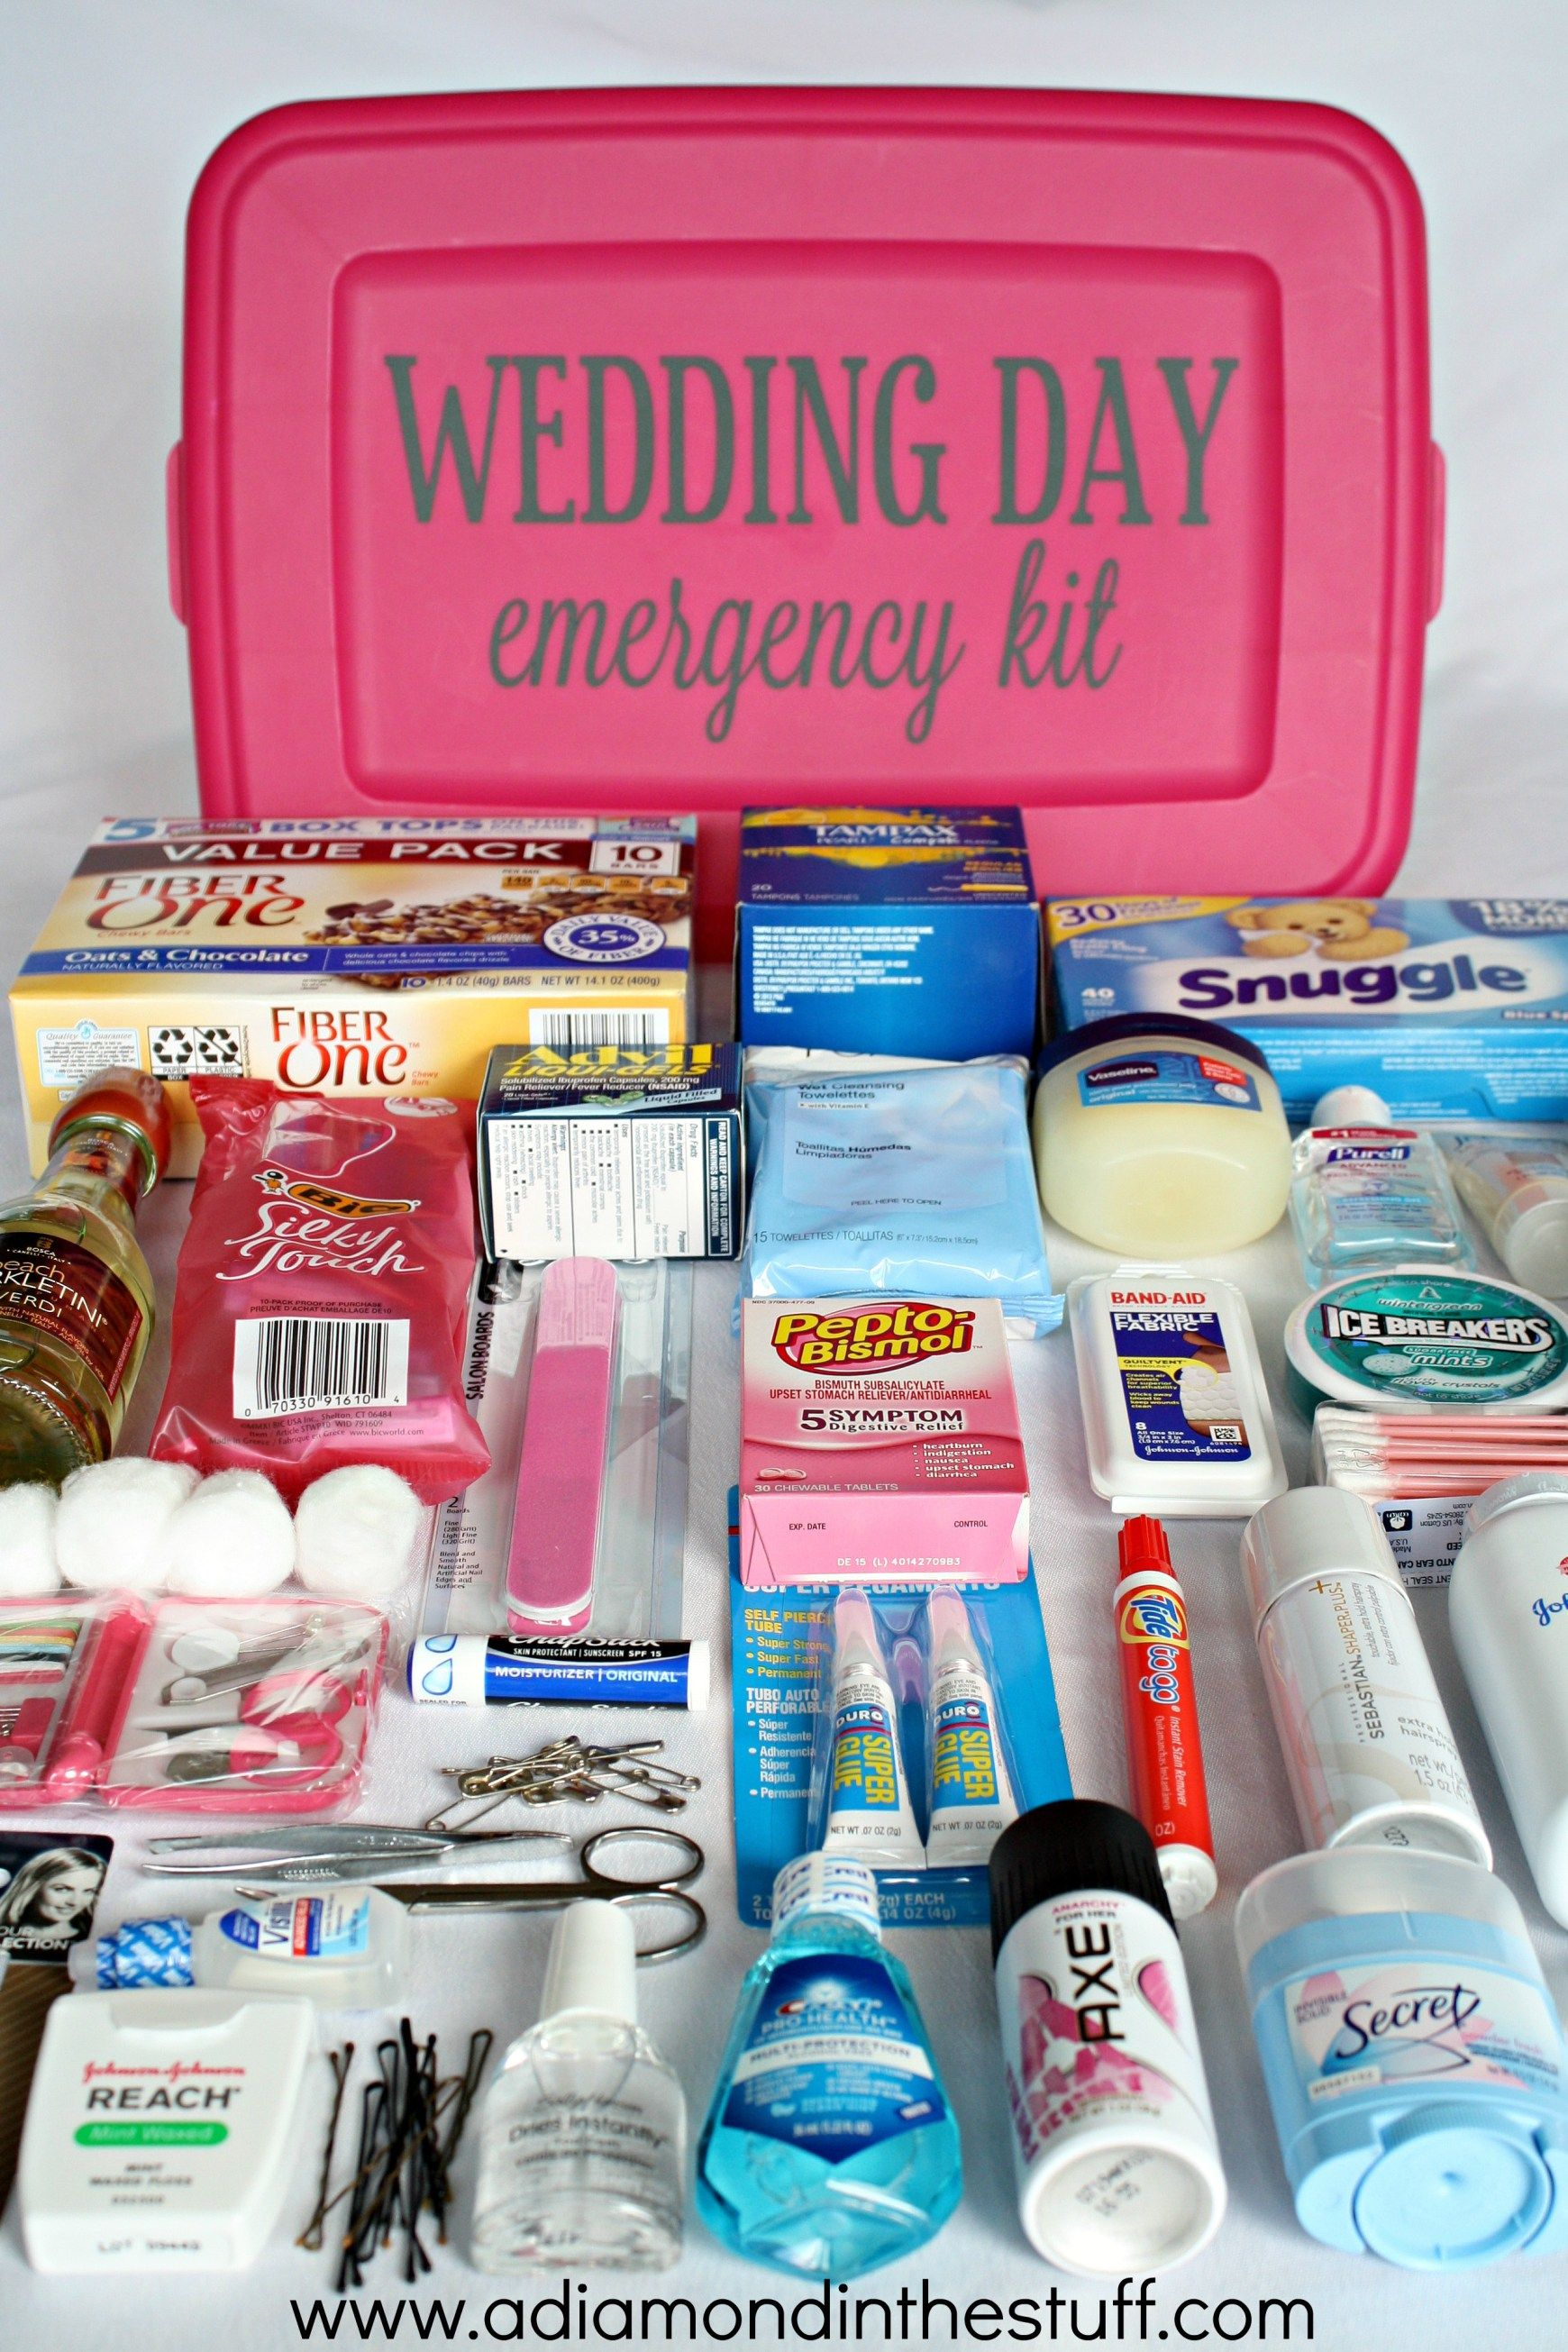 Wedding Day Emergency Kit | Wedding accessories | Pinterest ...